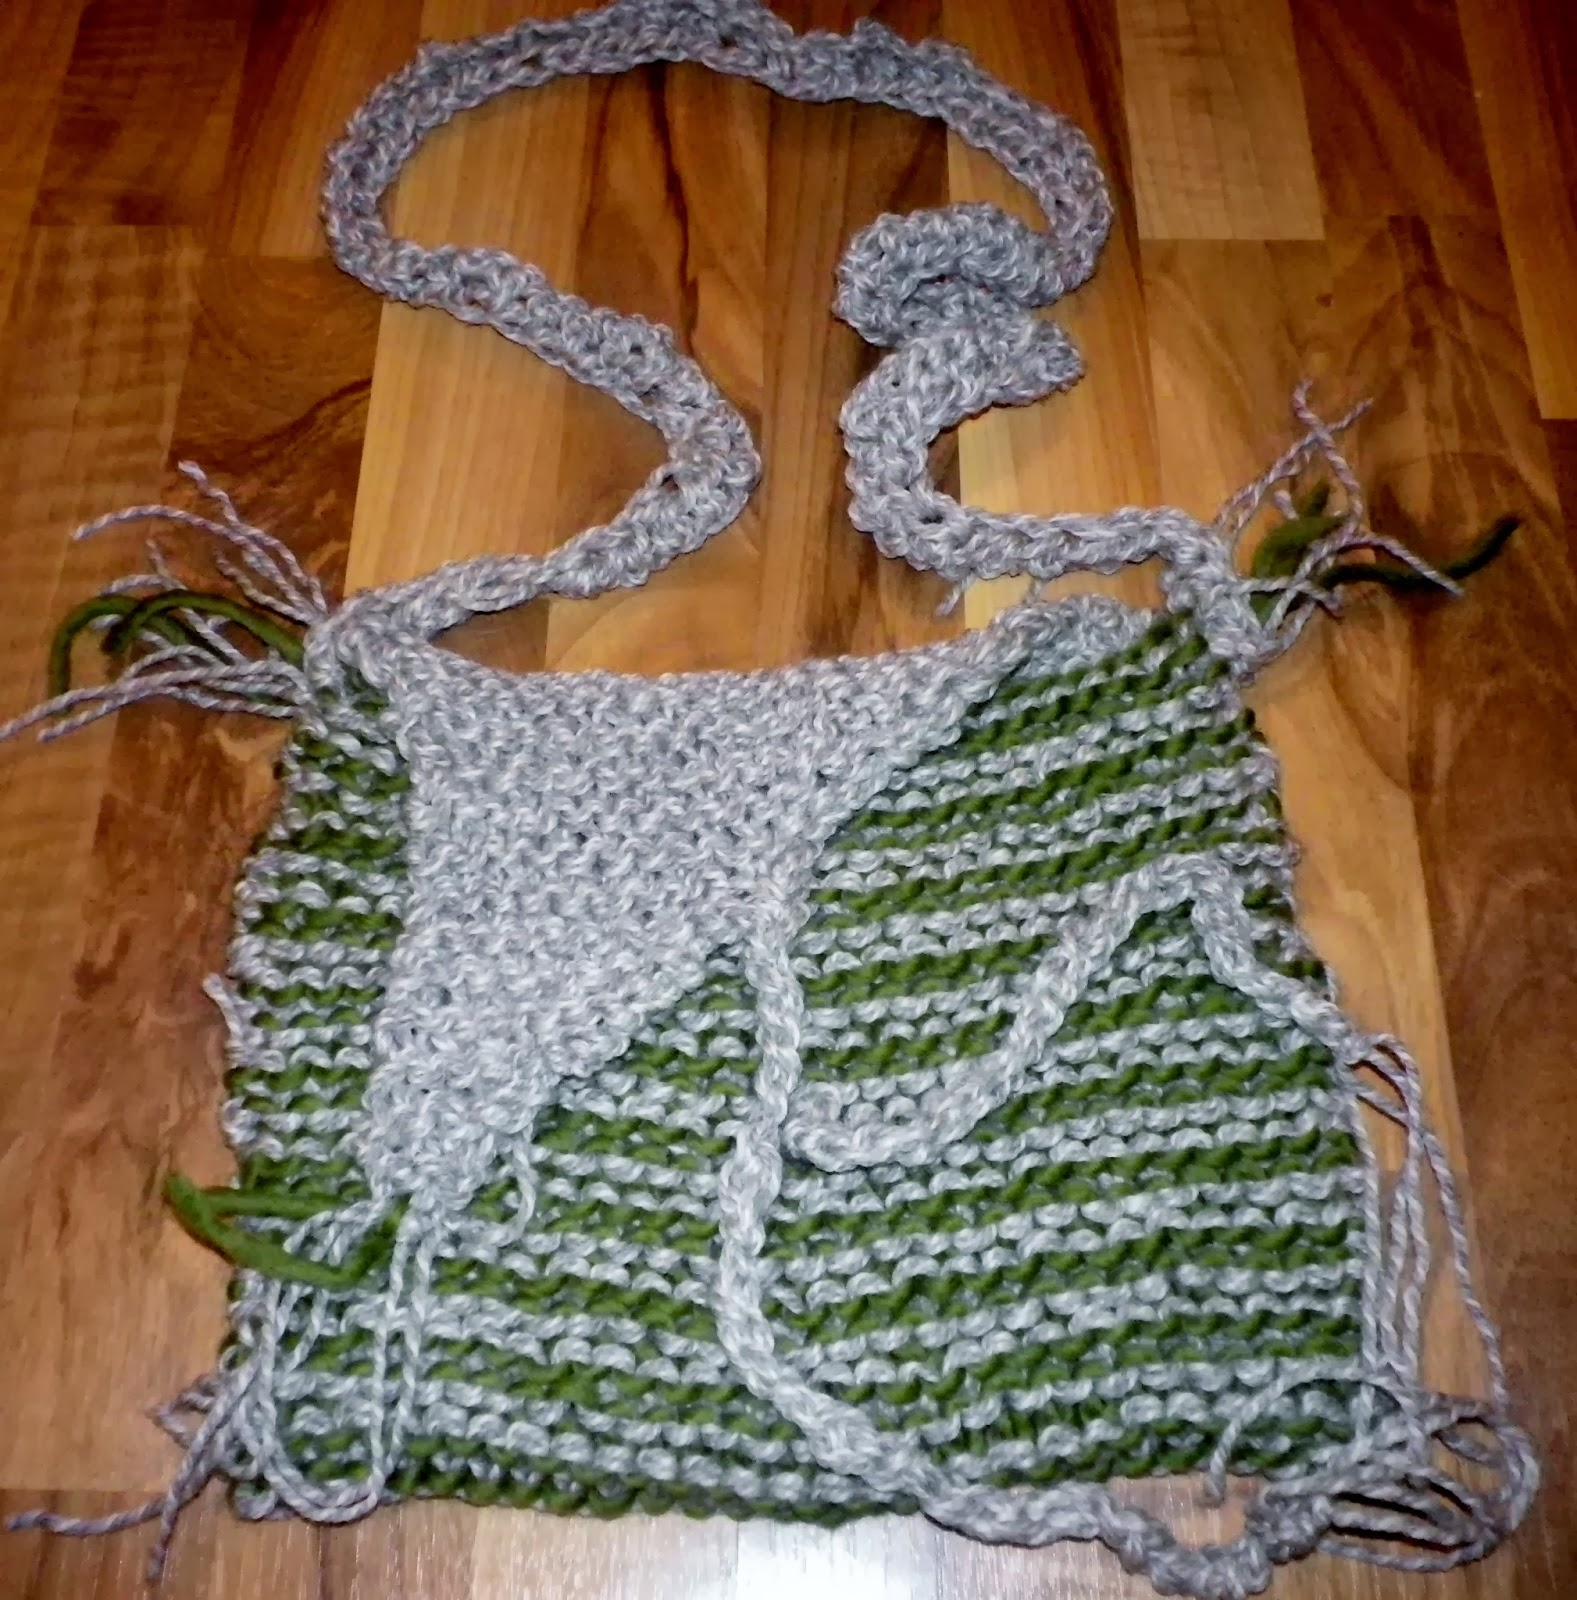 Knit  Druid bag, before felting